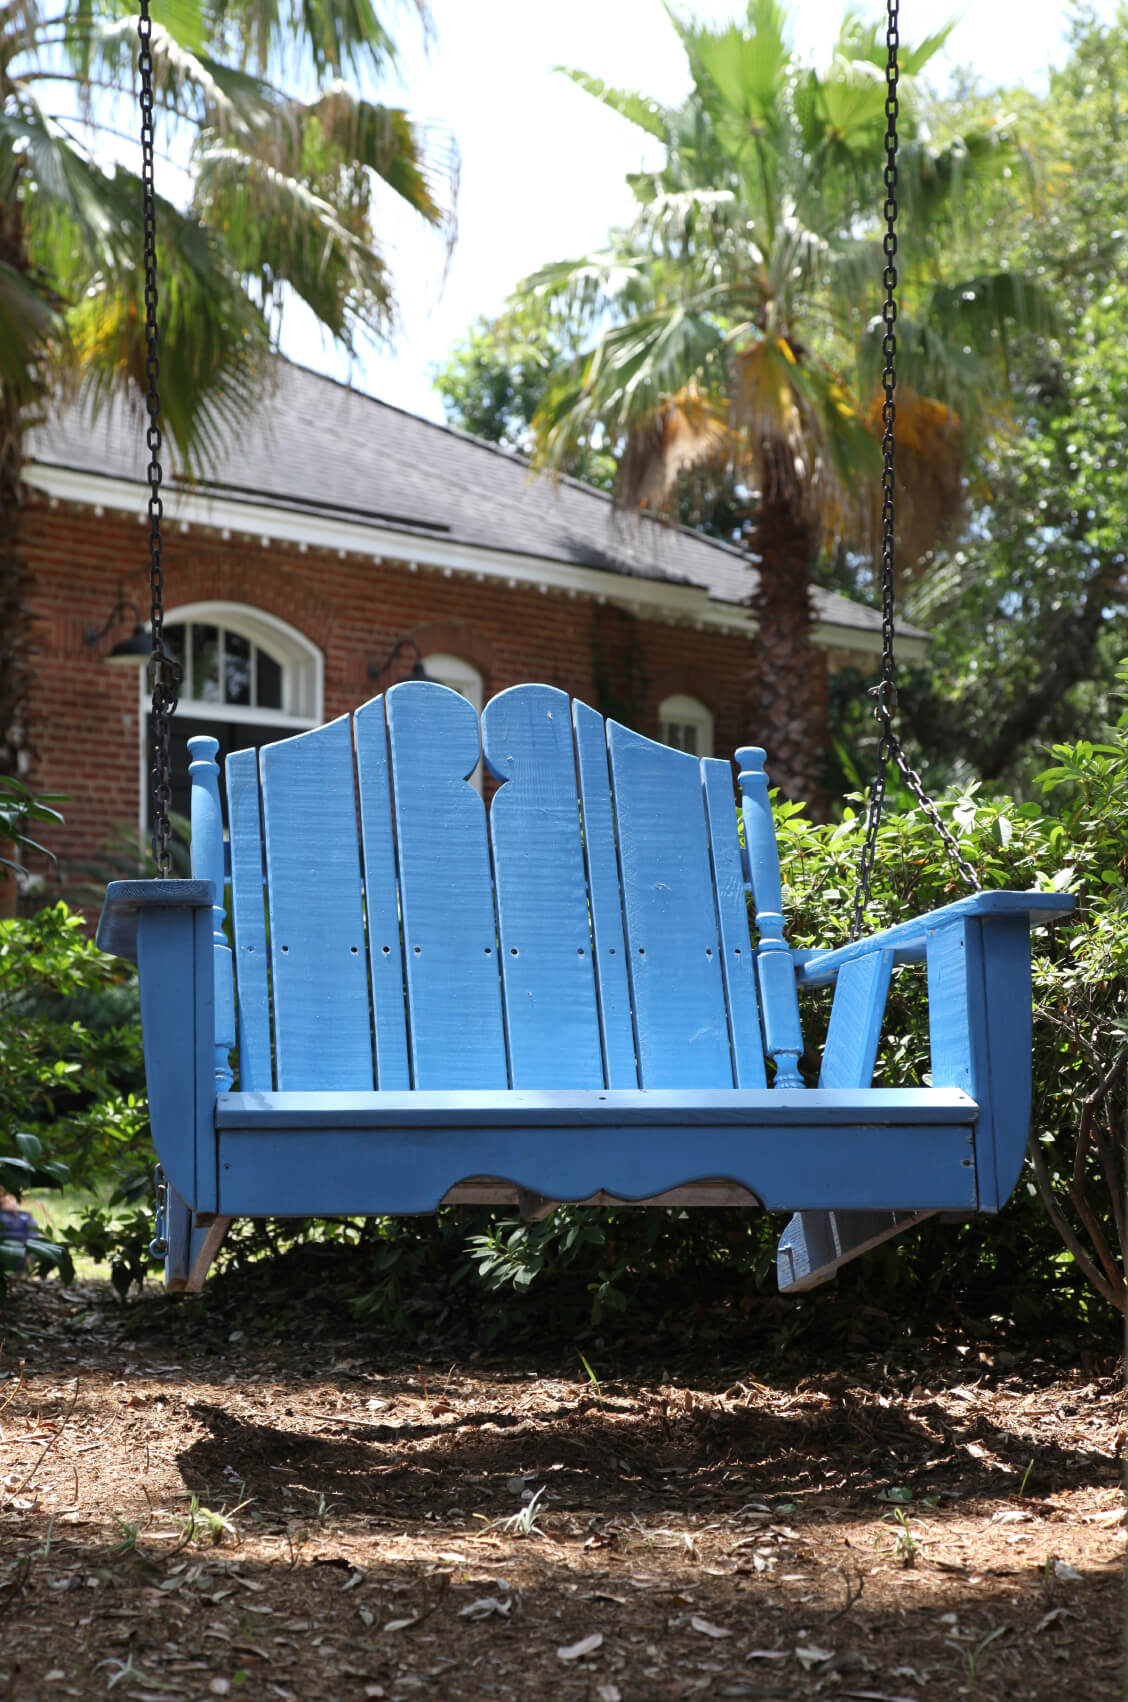 The good thing about having a swing made from wood is that wood is a material that accepts paint and finishes very well. This means that wooden swings can be painted to match any design.